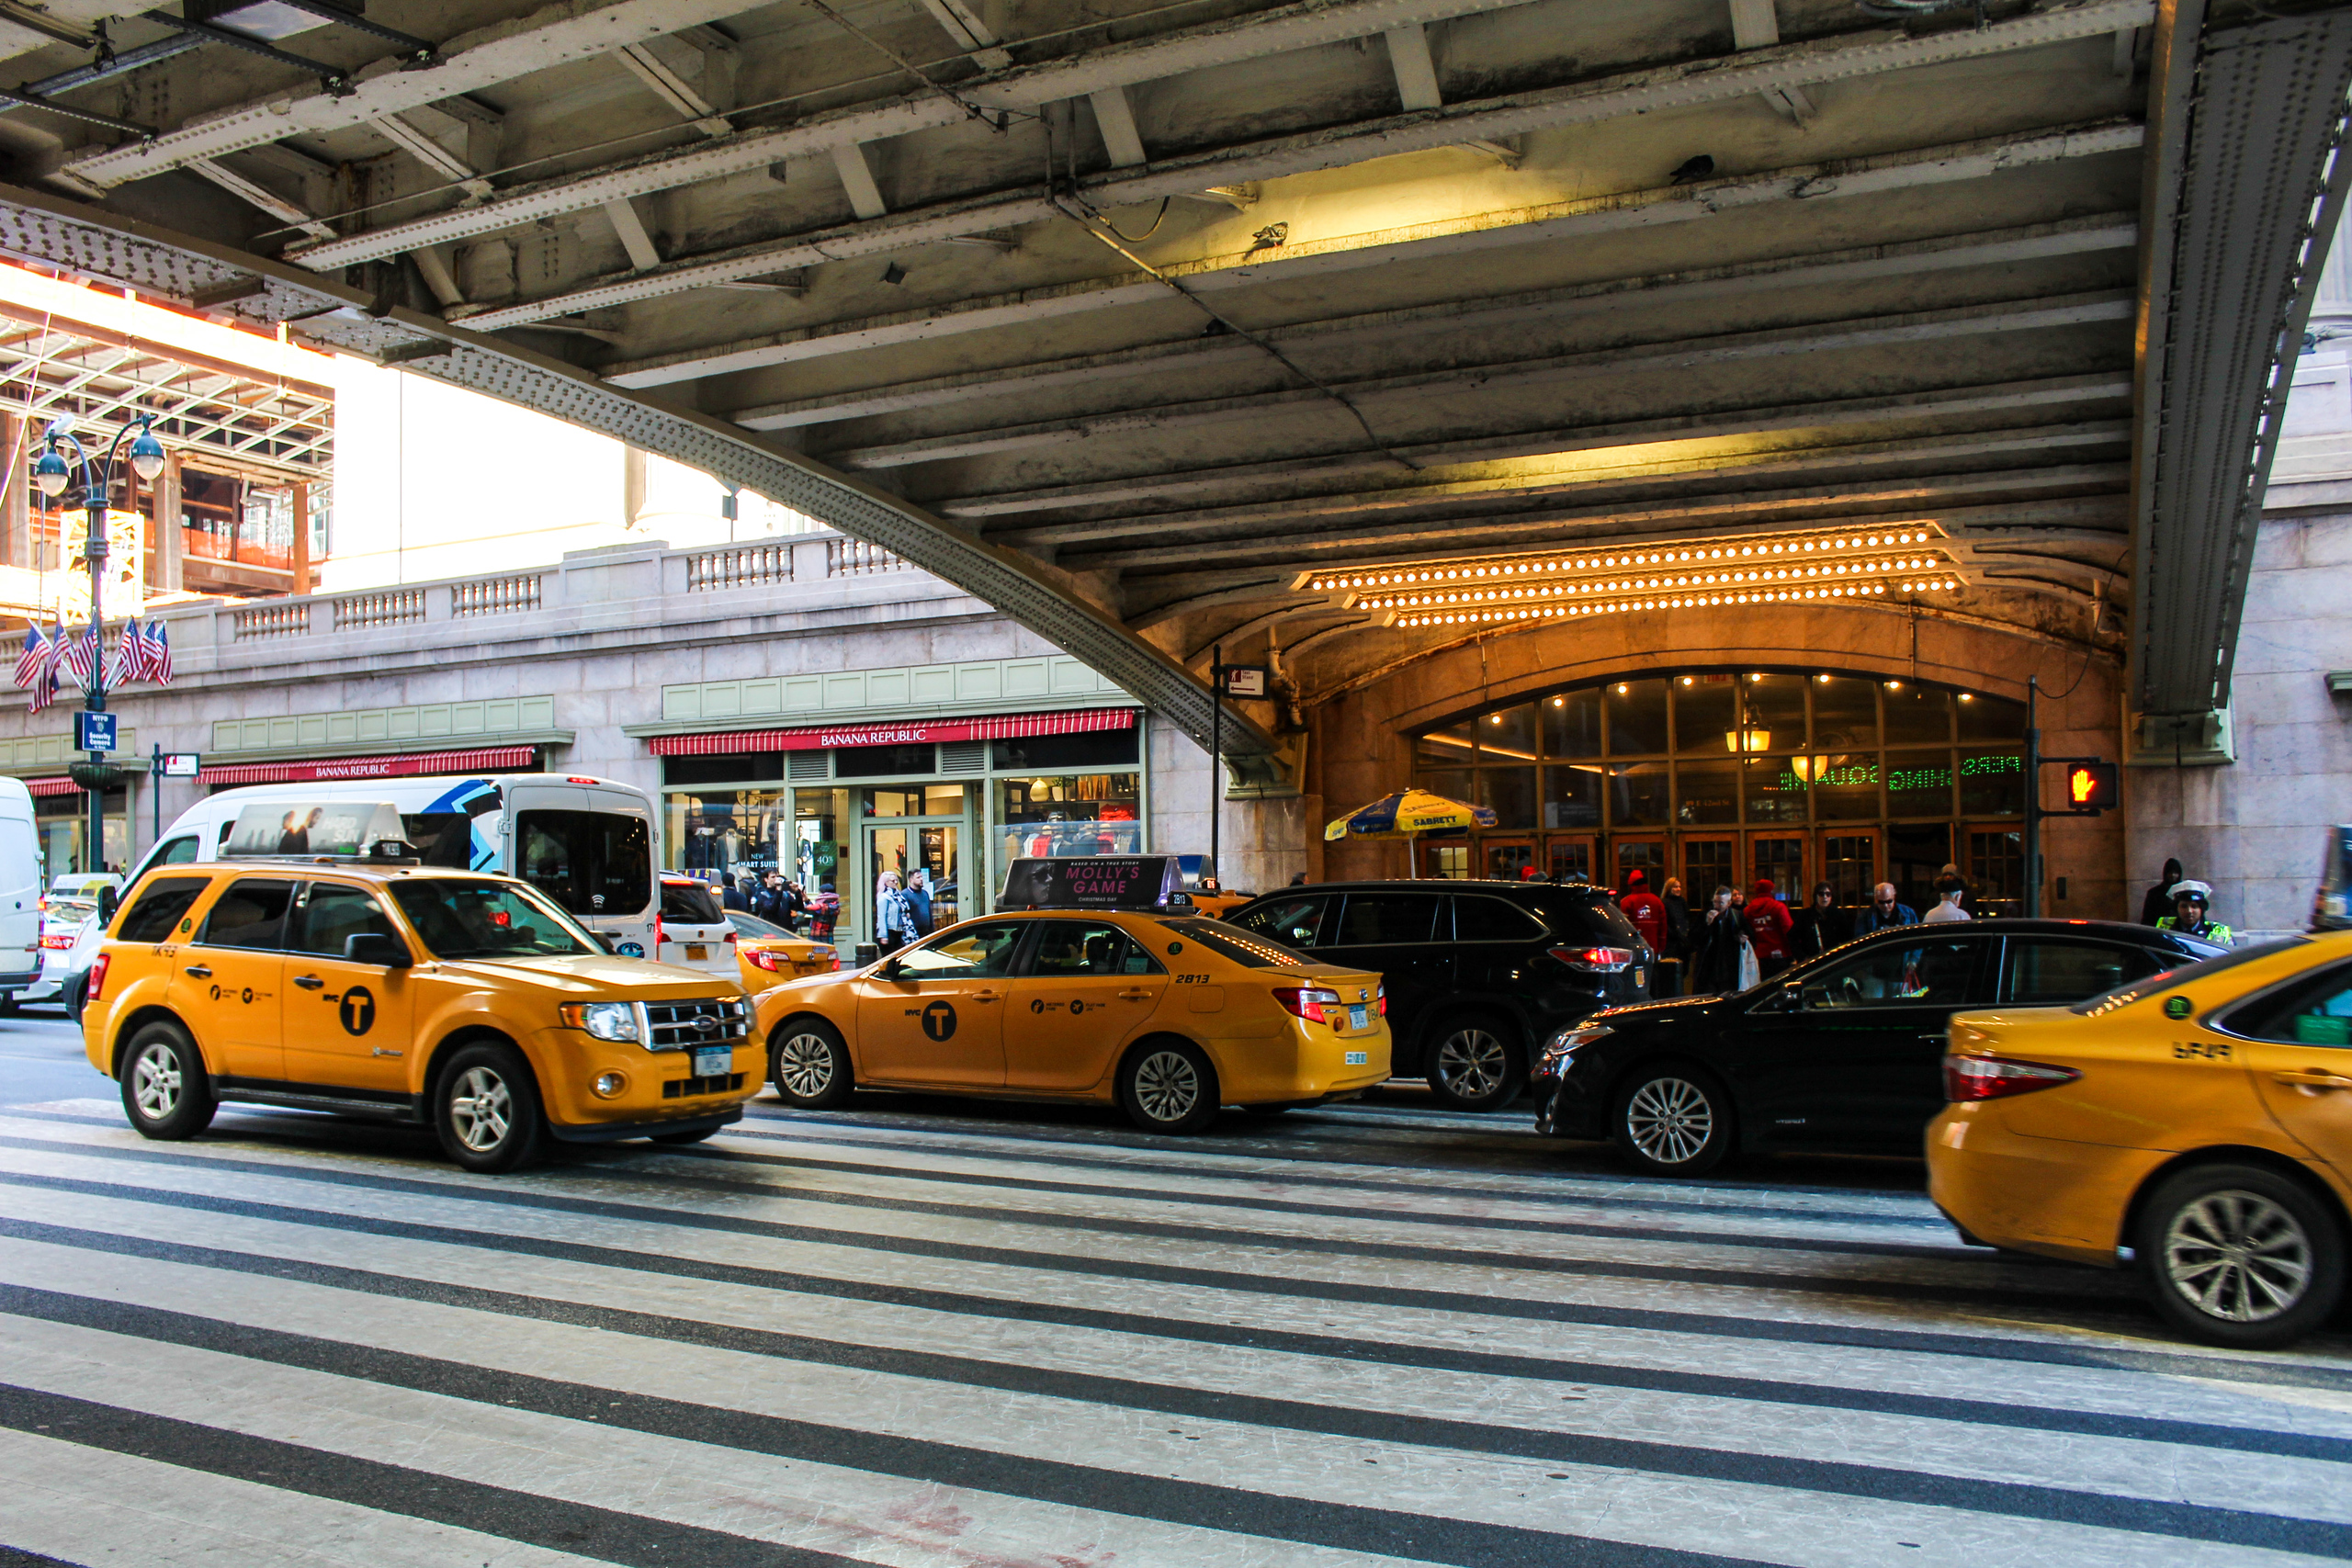 visiting the met? take one of the yellow cabs